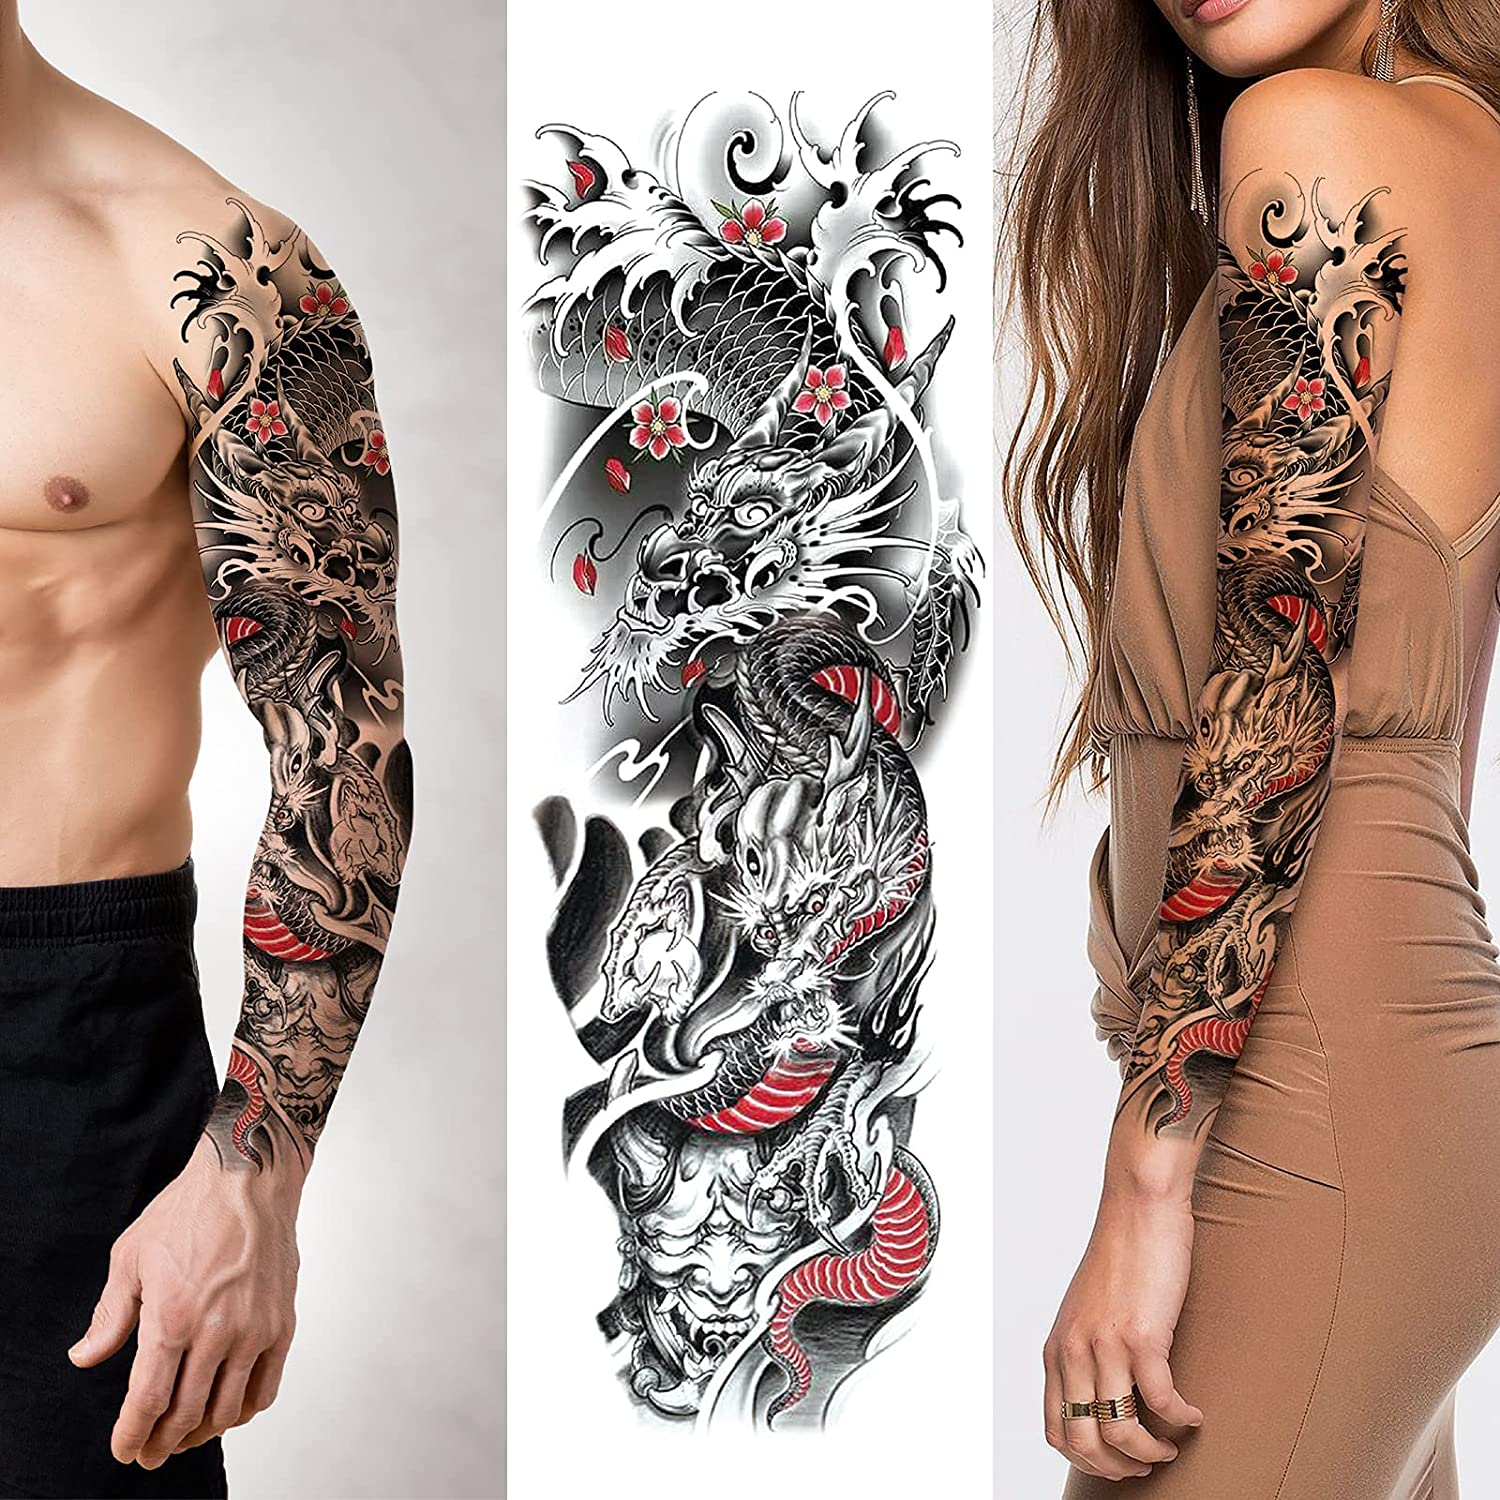 Full Arm Temporary Tattoos -Waterproof Fake With Overseas parallel import Great interest regular item Realist